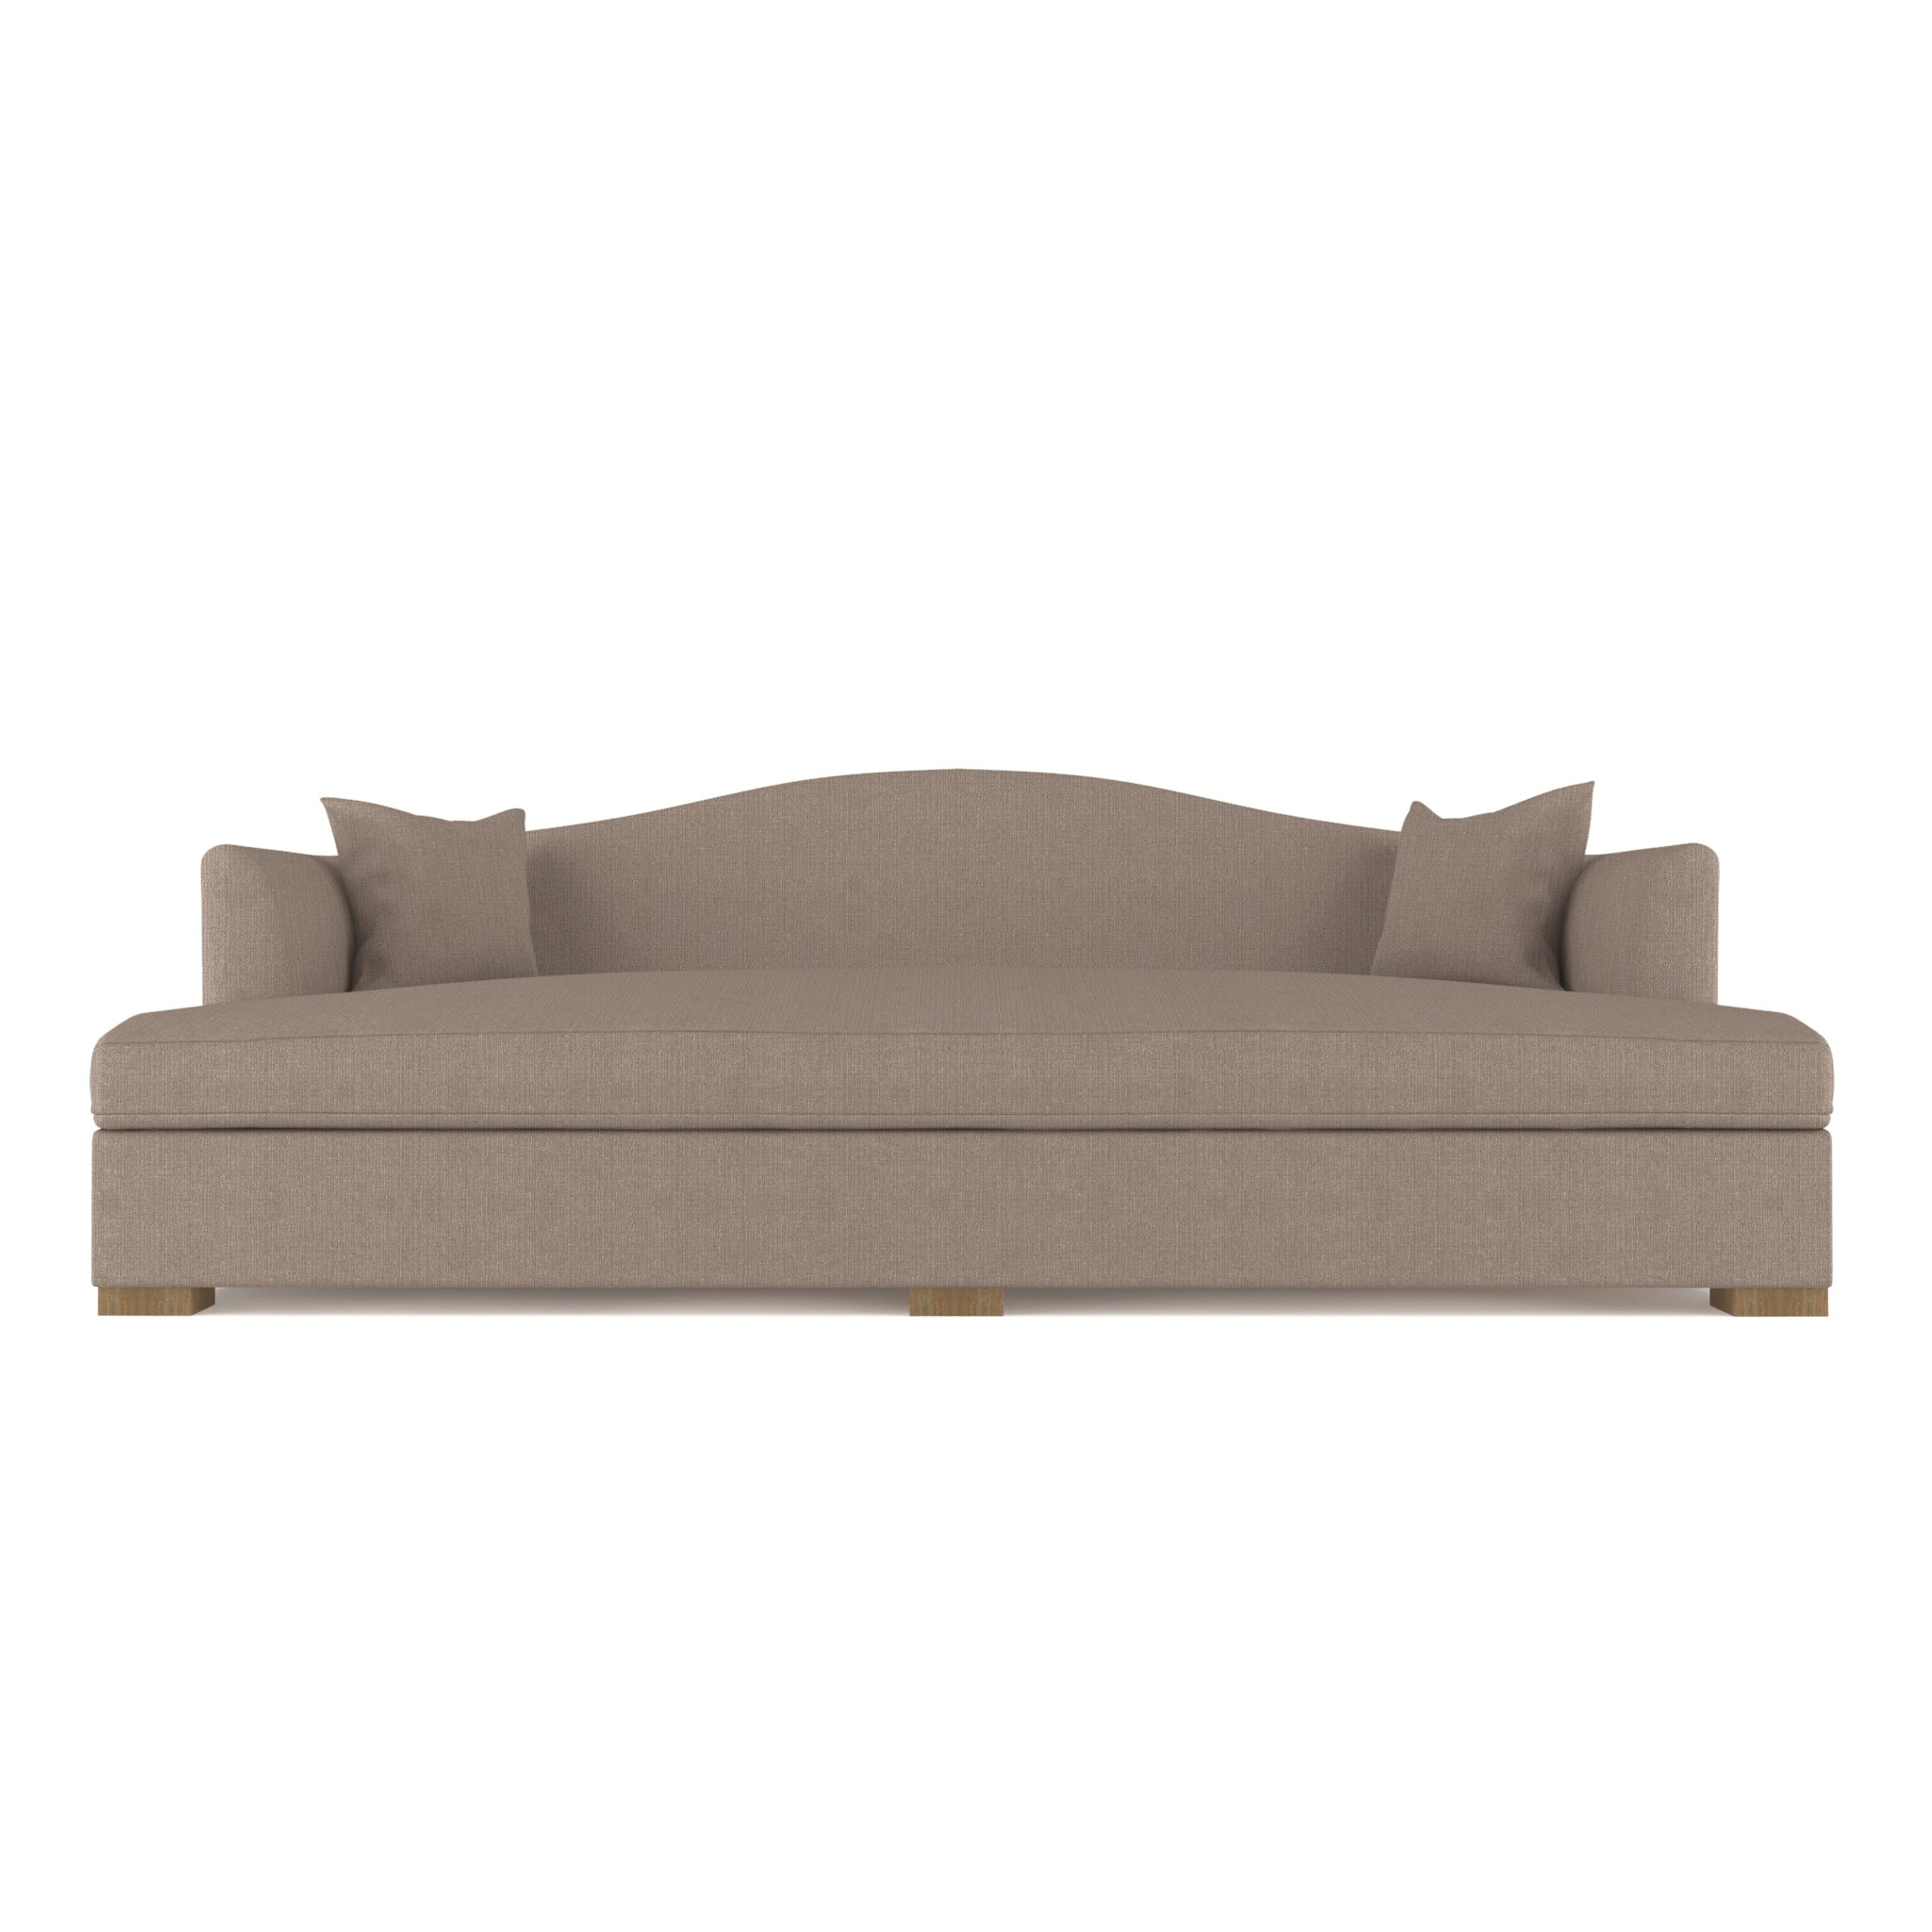 Horatio Daybed - Pumice Box Weave Linen